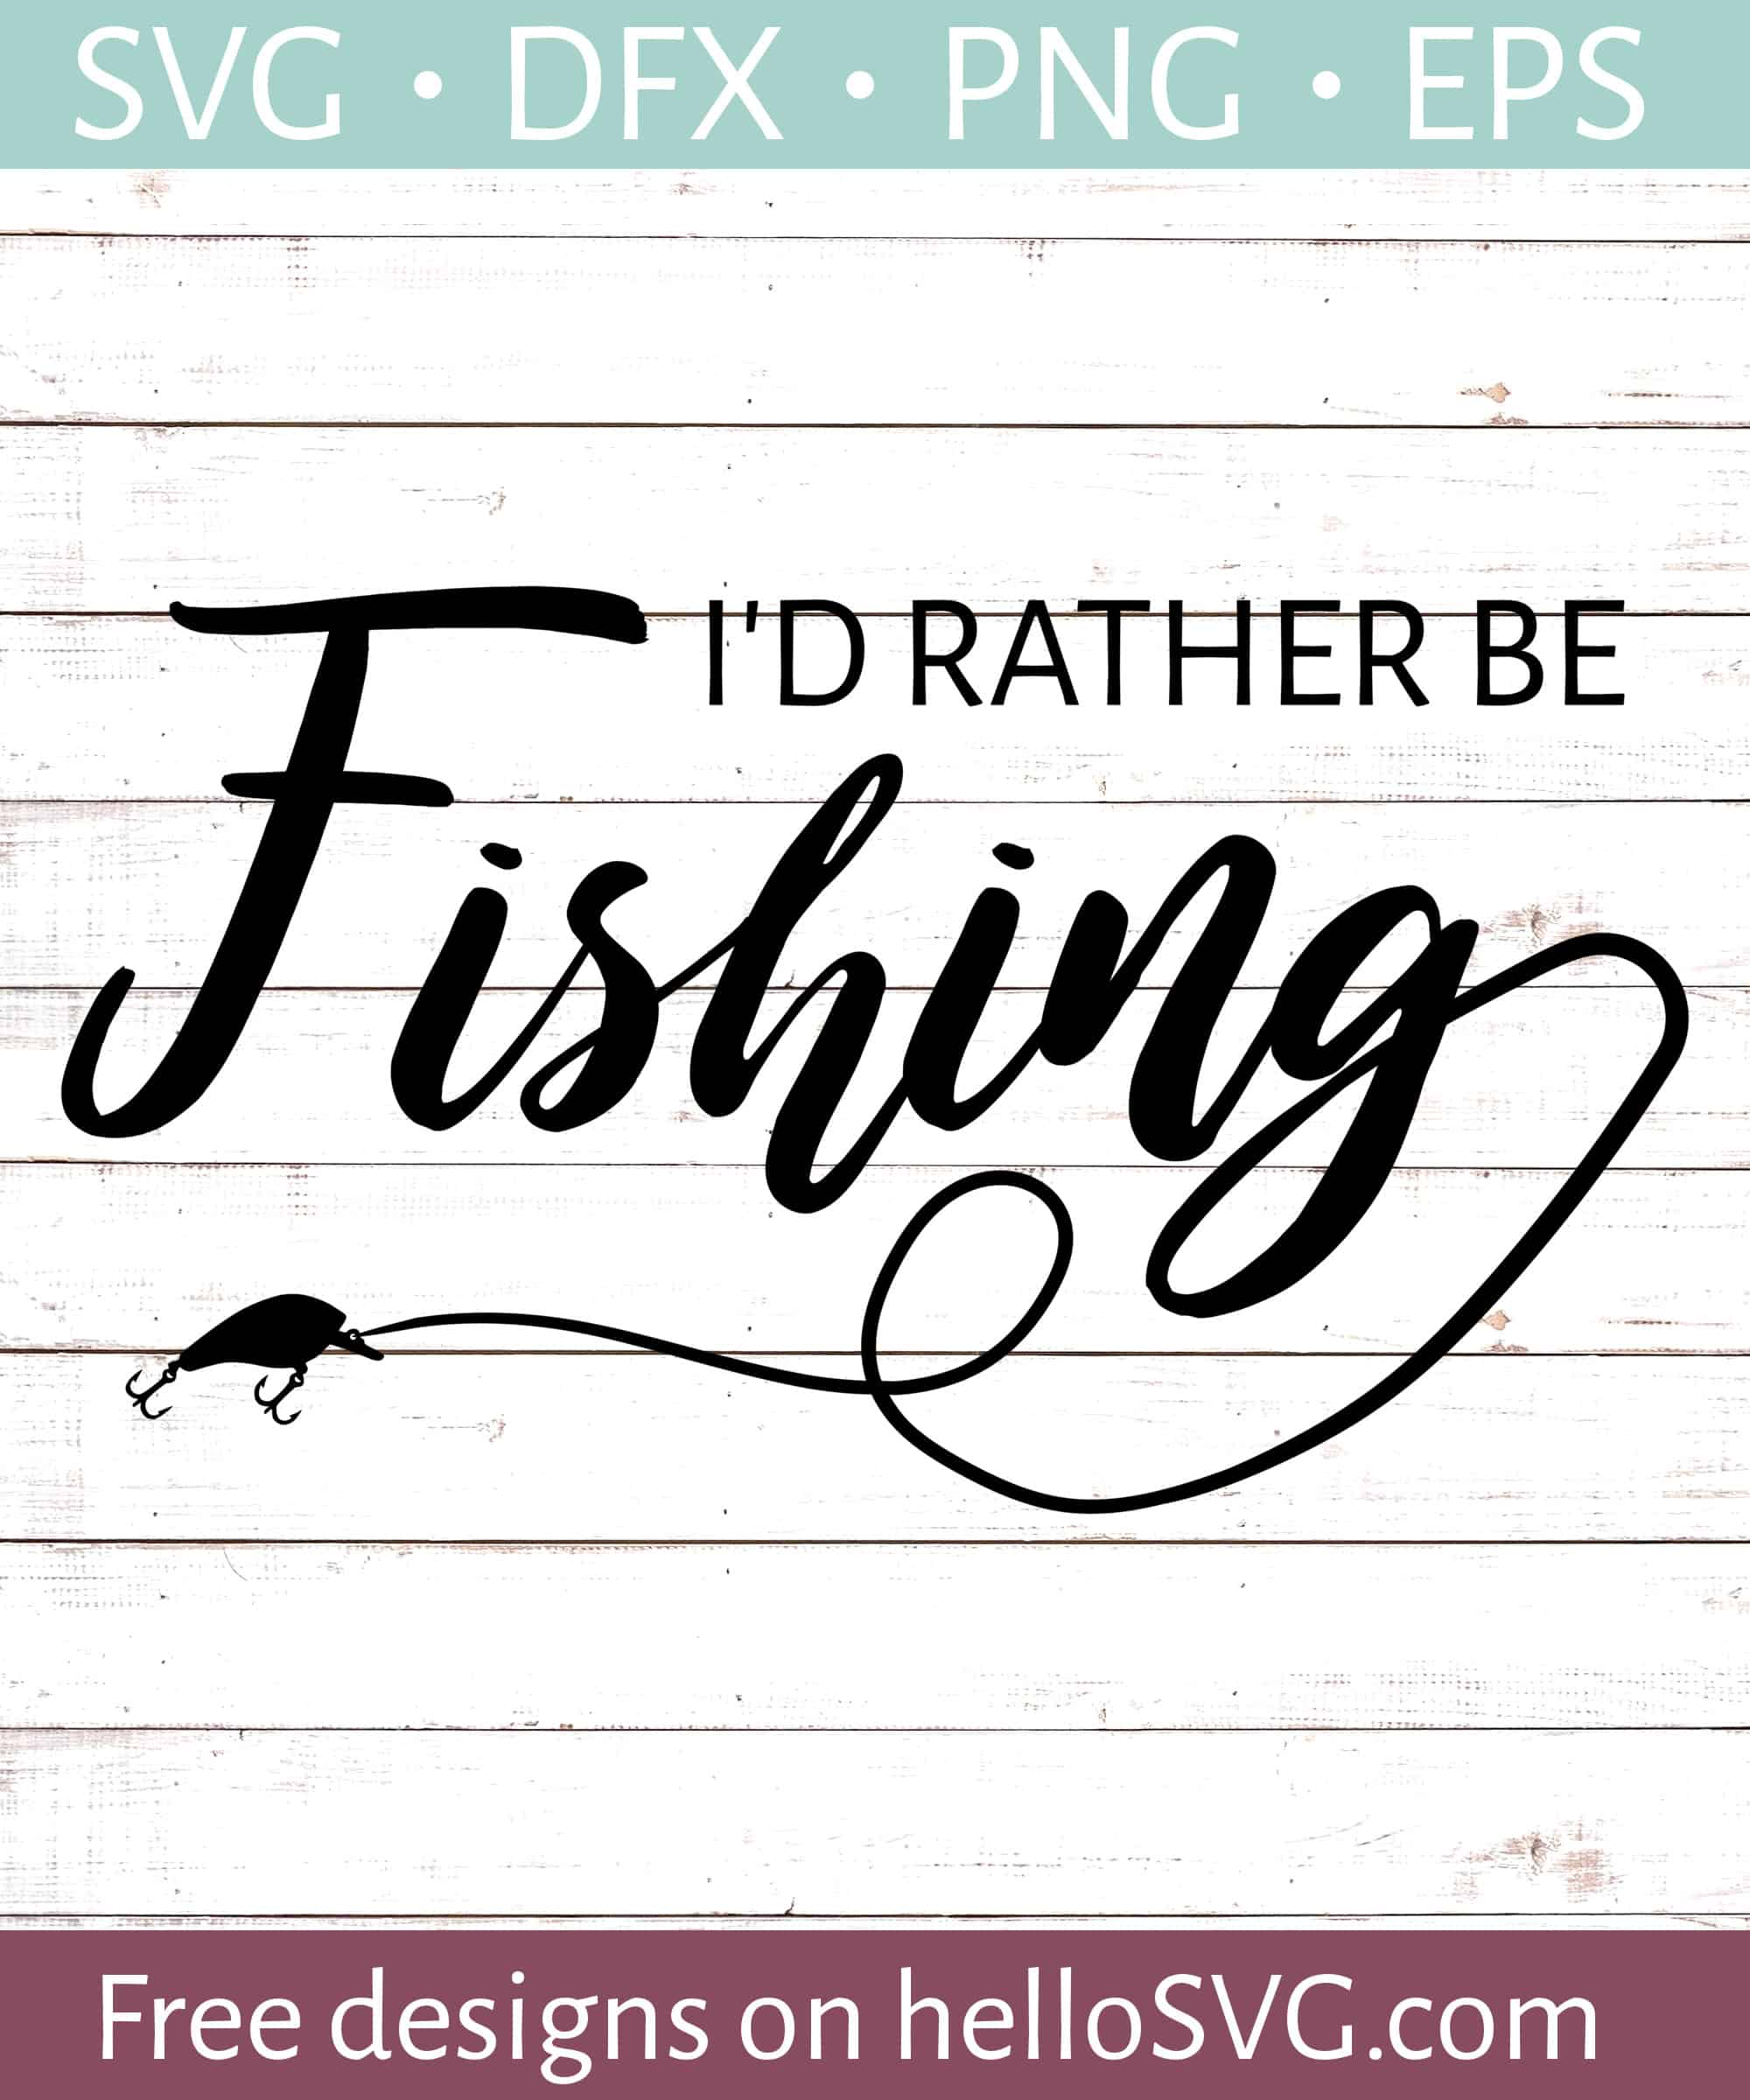 367c03a75 I'd Rather Be Fishing SVG - Free SVG files | HelloSVG.com